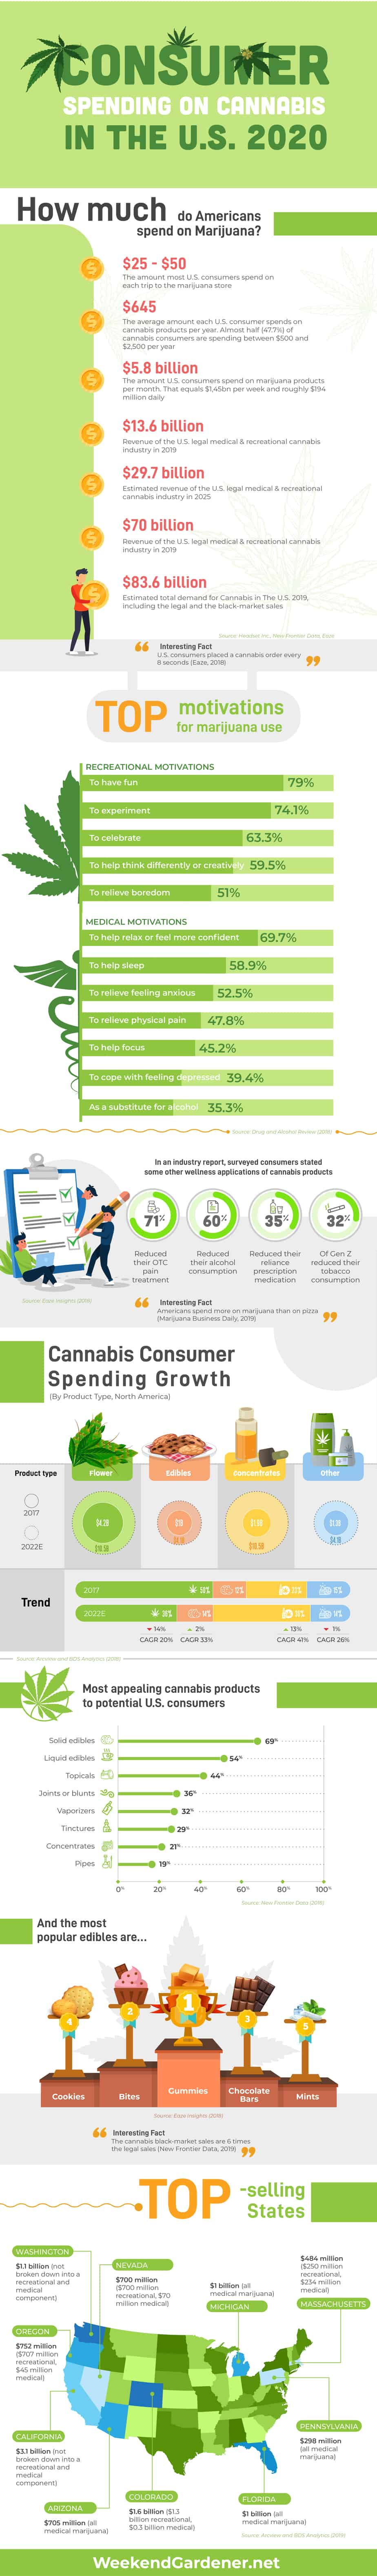 Consumer Spending on Cannabis in The U.S 2020